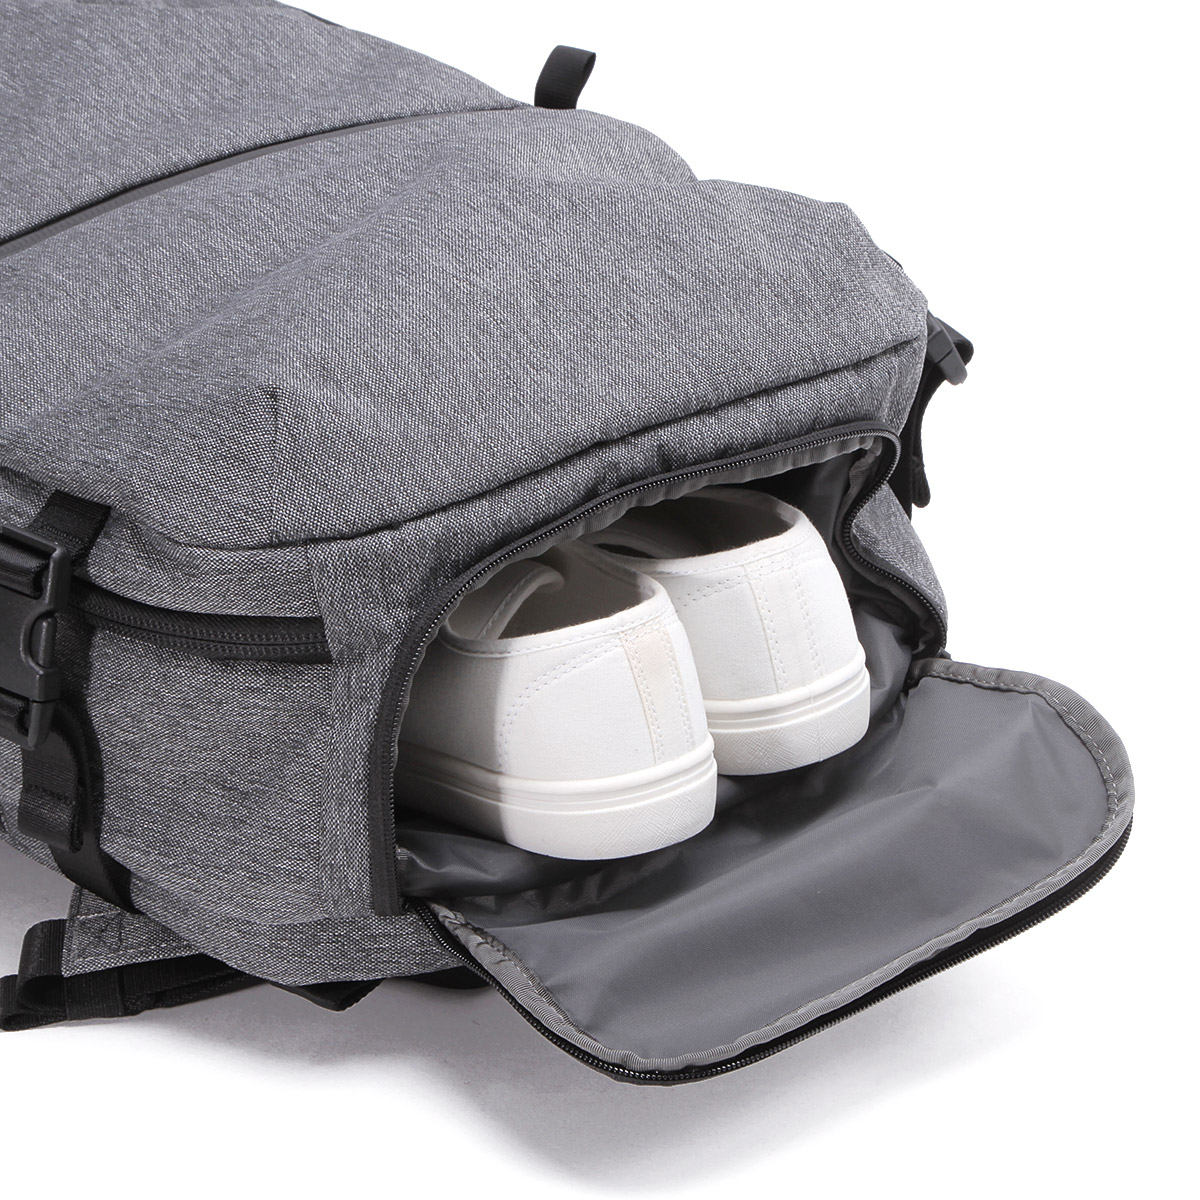 Air travel pack 2 2WAY rucksack backpack TRAVEL COLLECTION Travel Pack 2  Aer 22007 2d024170ad